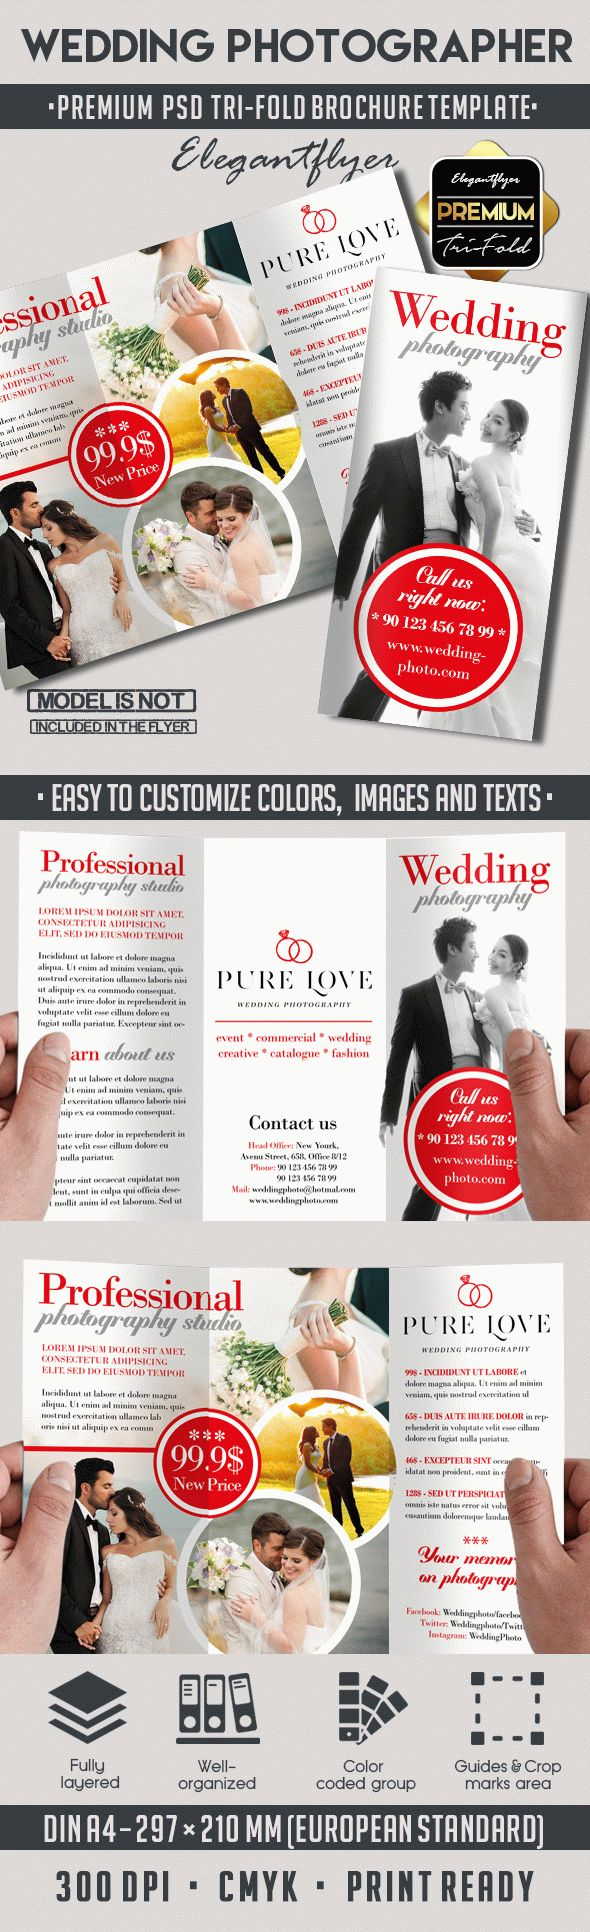 Wedding Photography – Premium Tri-Fold PSD Brochure Template